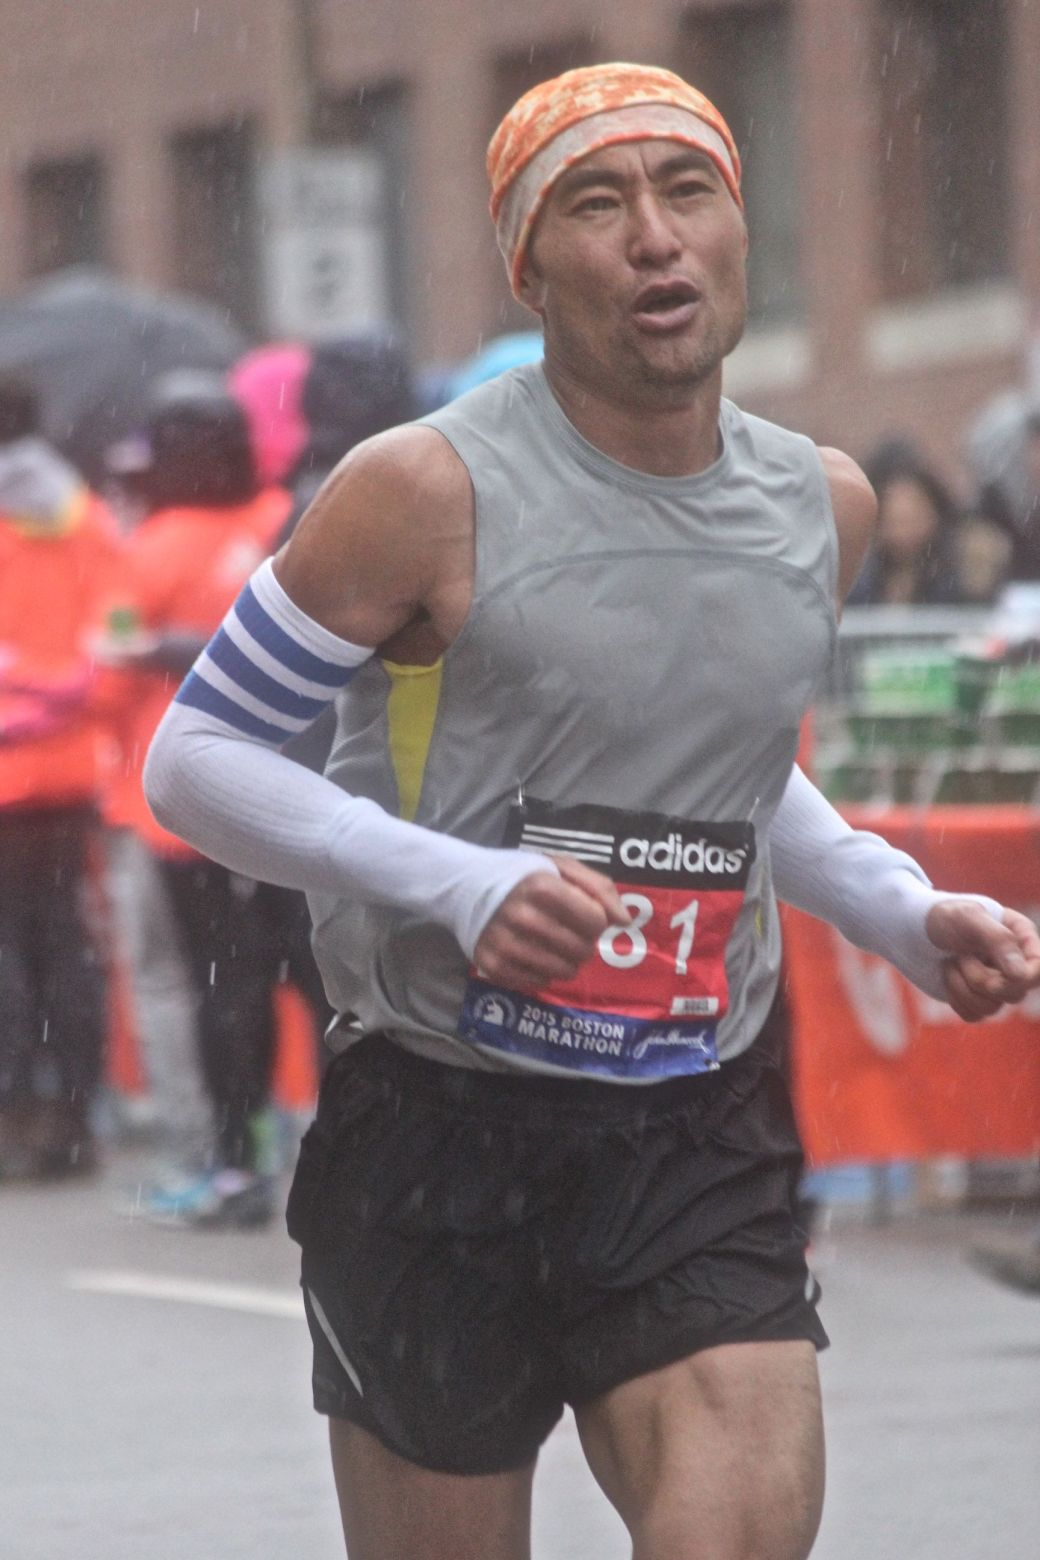 boston marathon april 20 2015 racer number 681 rain